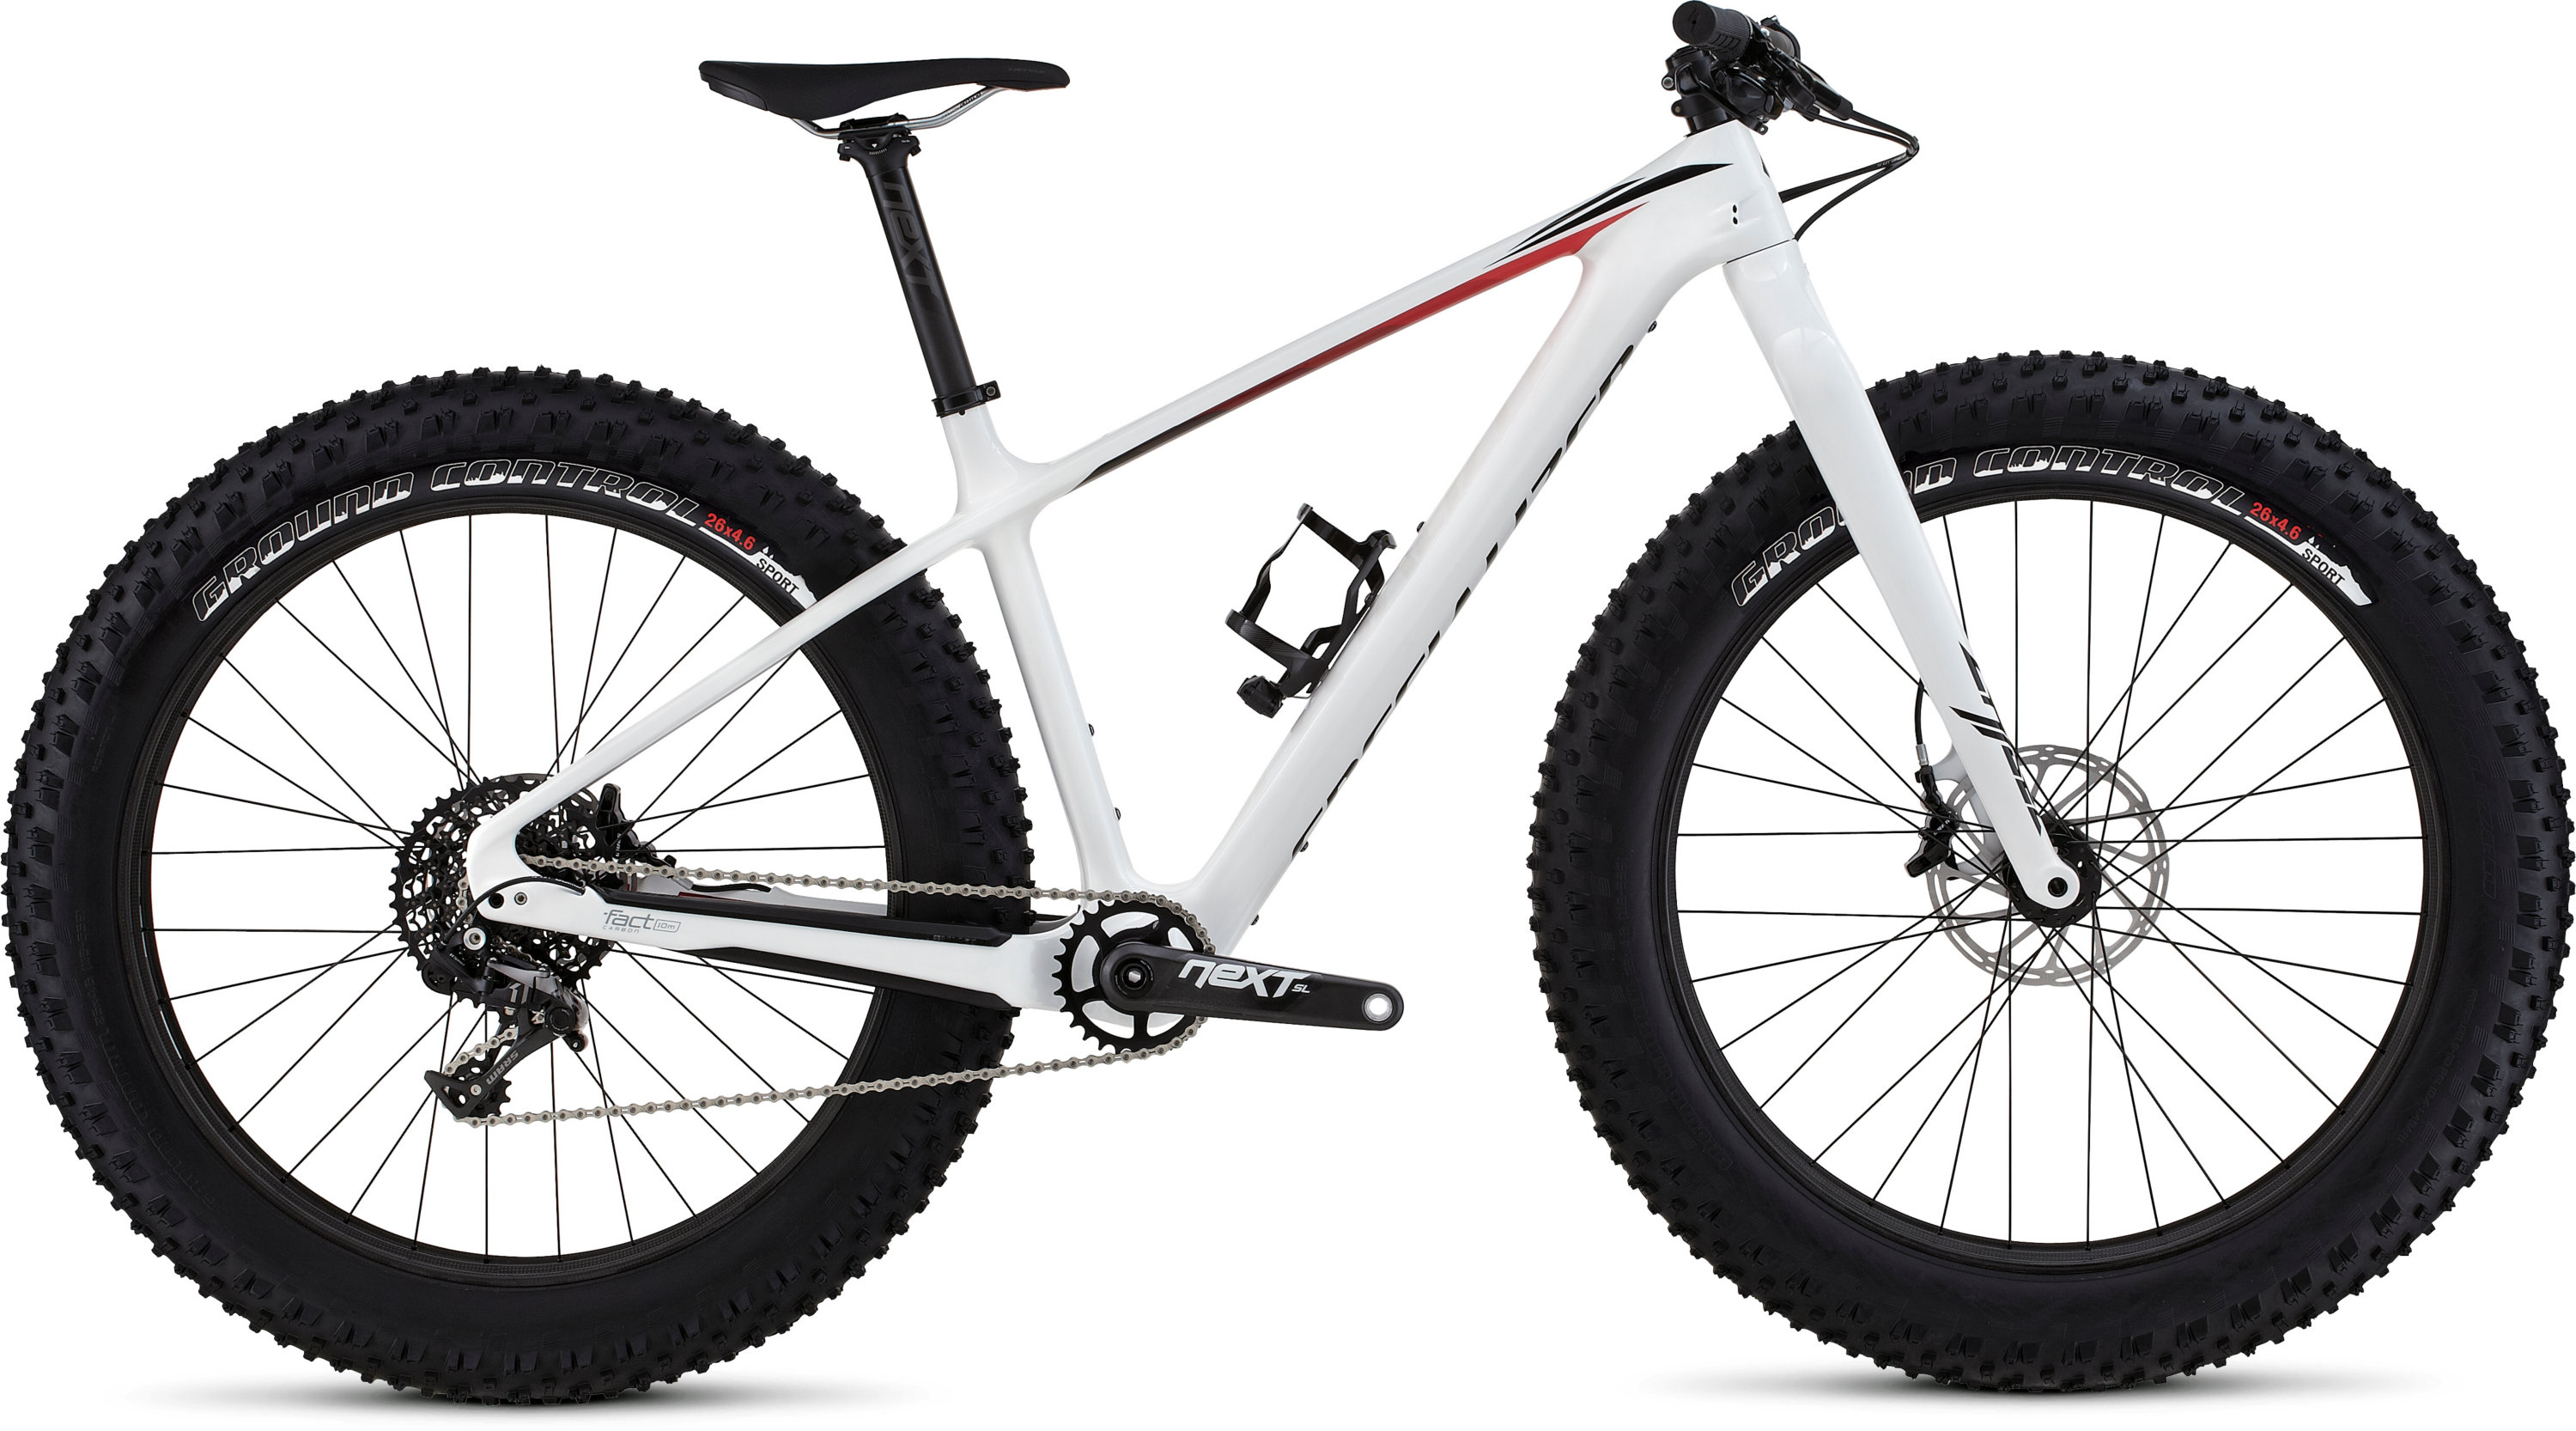 SPECIALIZED FATBOY EXPERT CARBON WHT/BLK/RED S - Bikedreams & Dustbikes